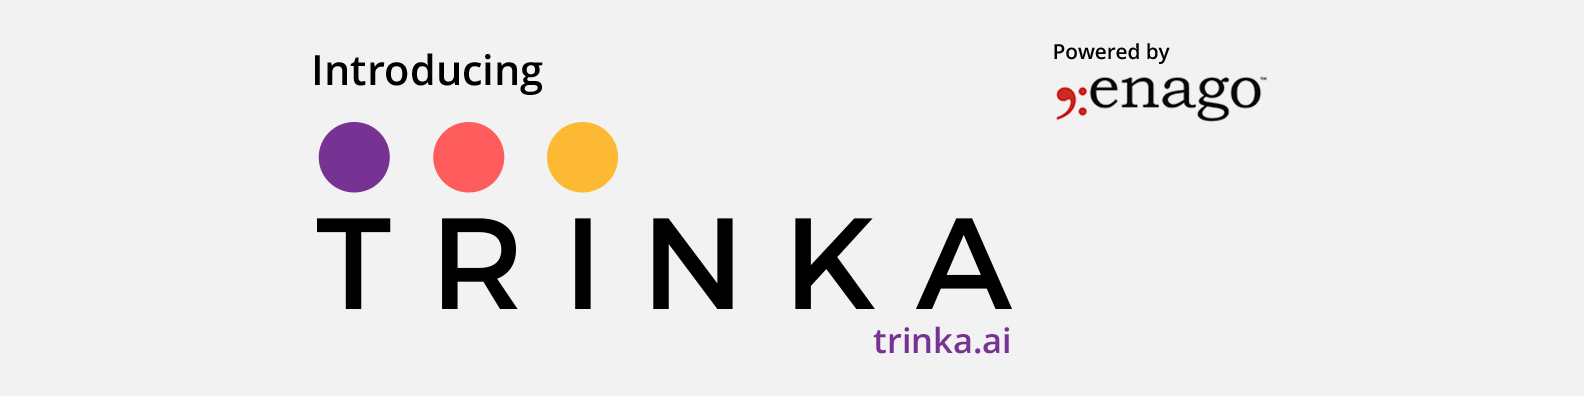 Trinka — World's Premier Academic & Technical Writing Assistant is Here!